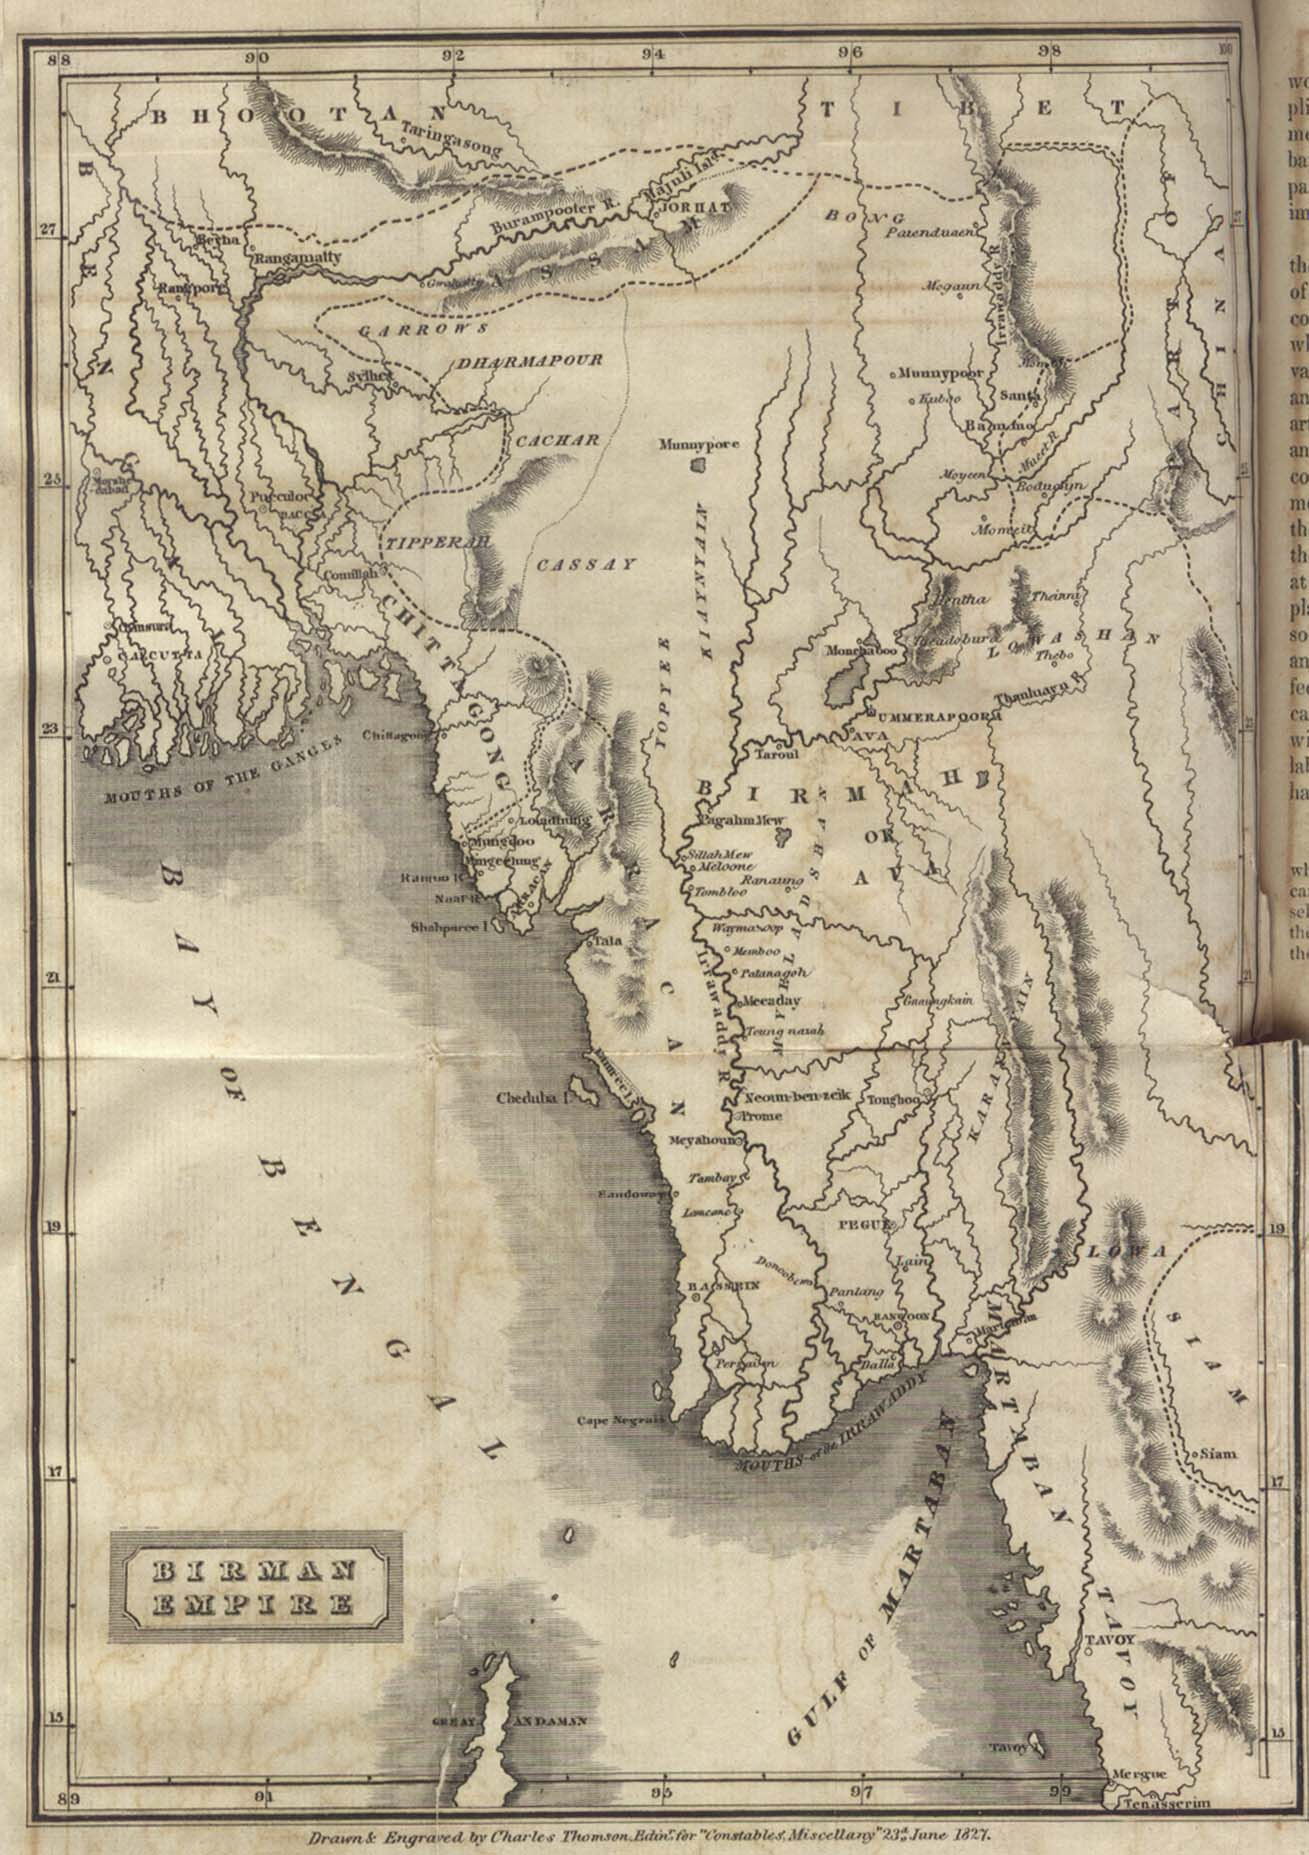 Online burma library reading room maps and satellite imagery title birman empire publicscrutiny Image collections